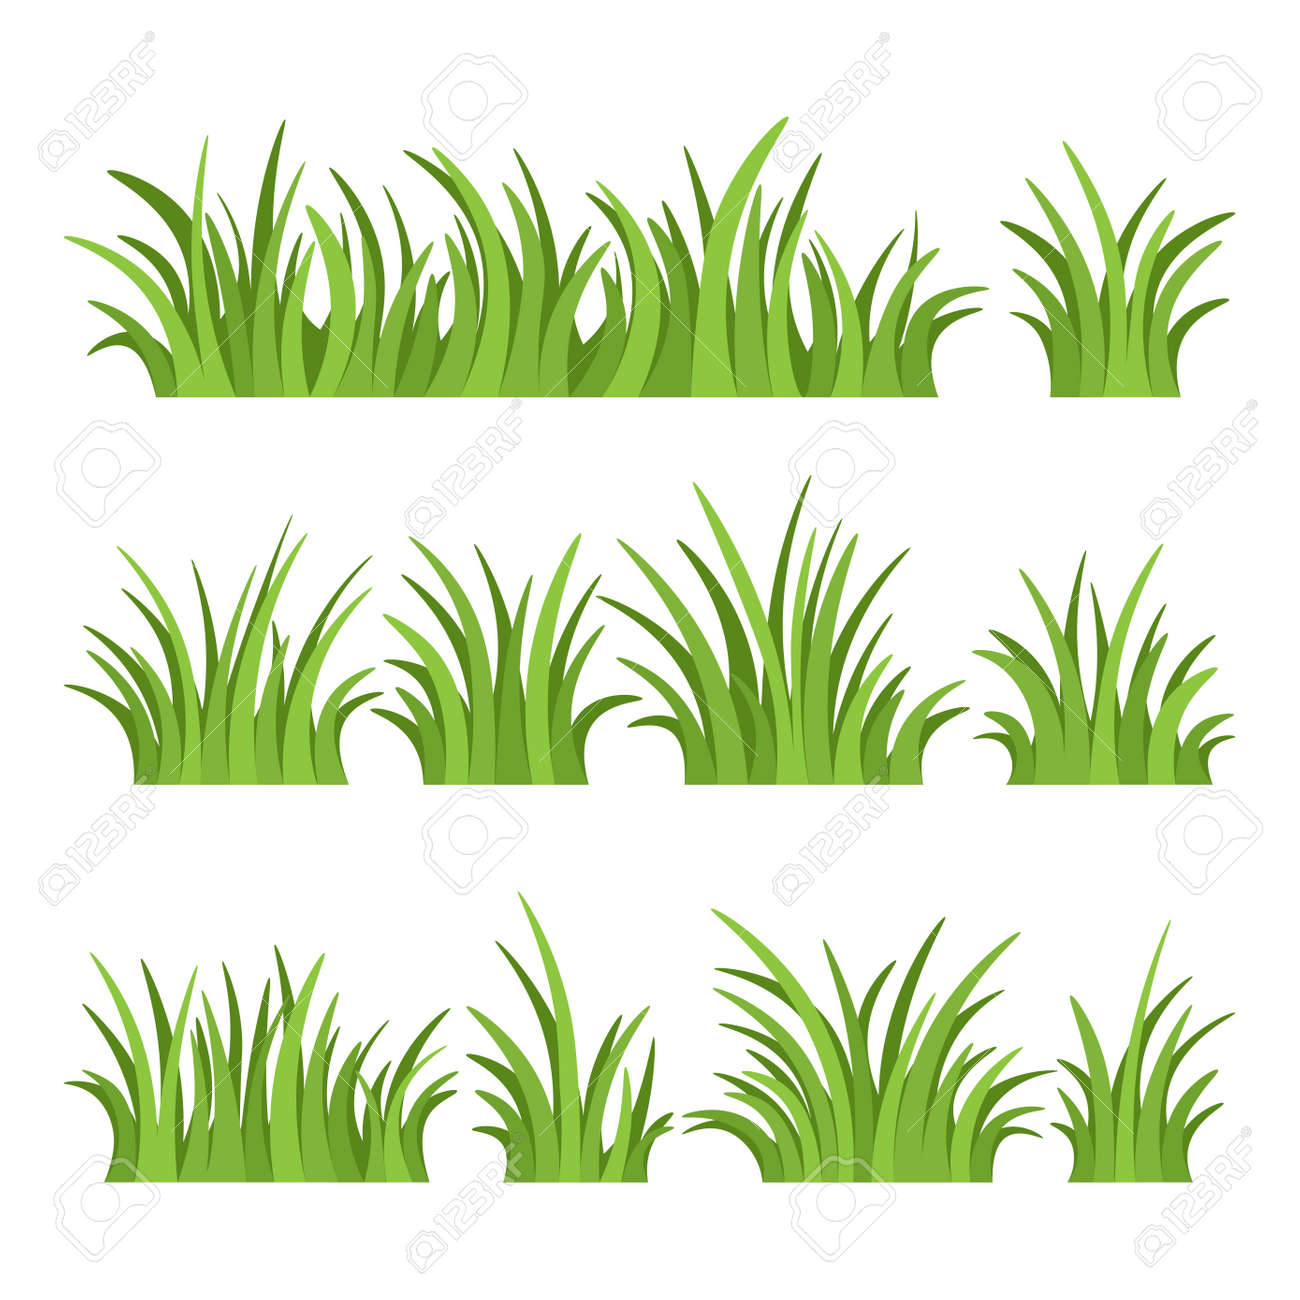 Set of green grass isolated on white background. Vector illustration. - 139736253